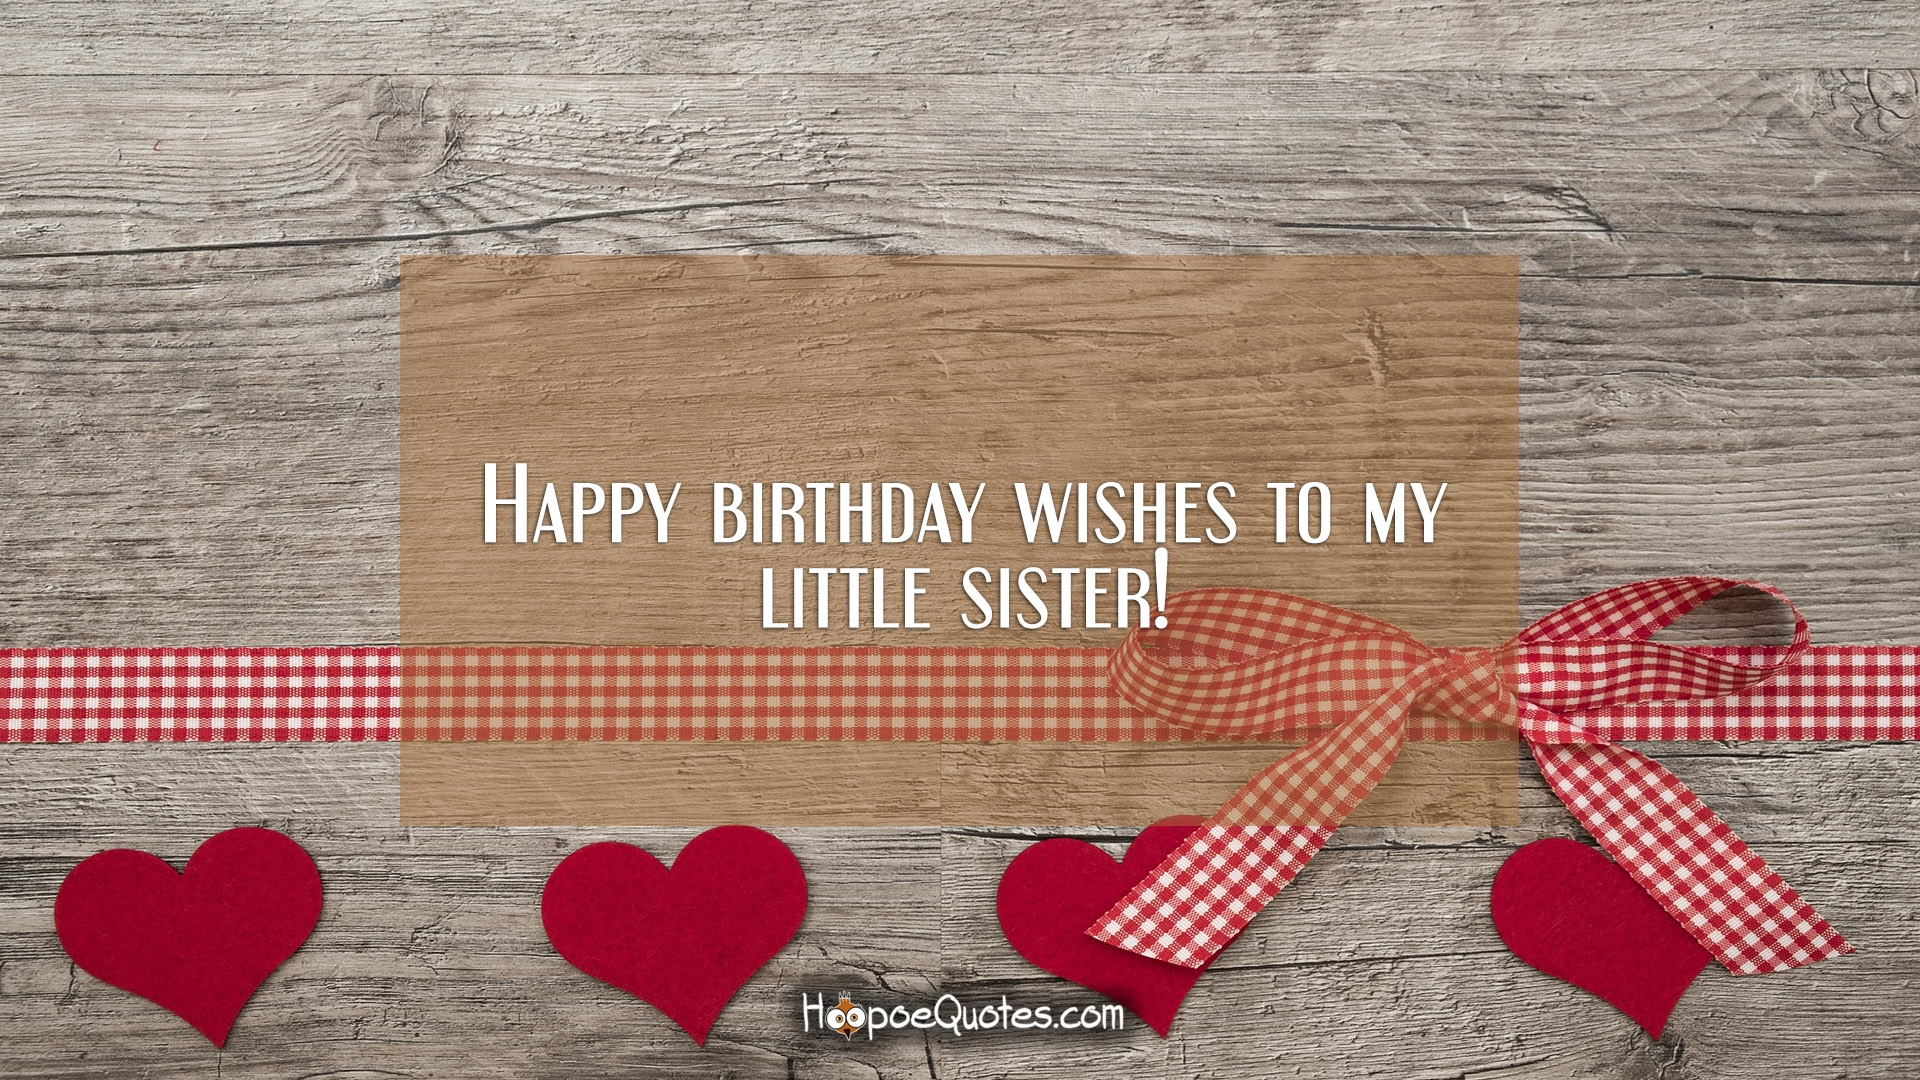 Astonishing Happy Birthday Wishes To My Little Sister Hoopoequotes Funny Birthday Cards Online Inifofree Goldxyz